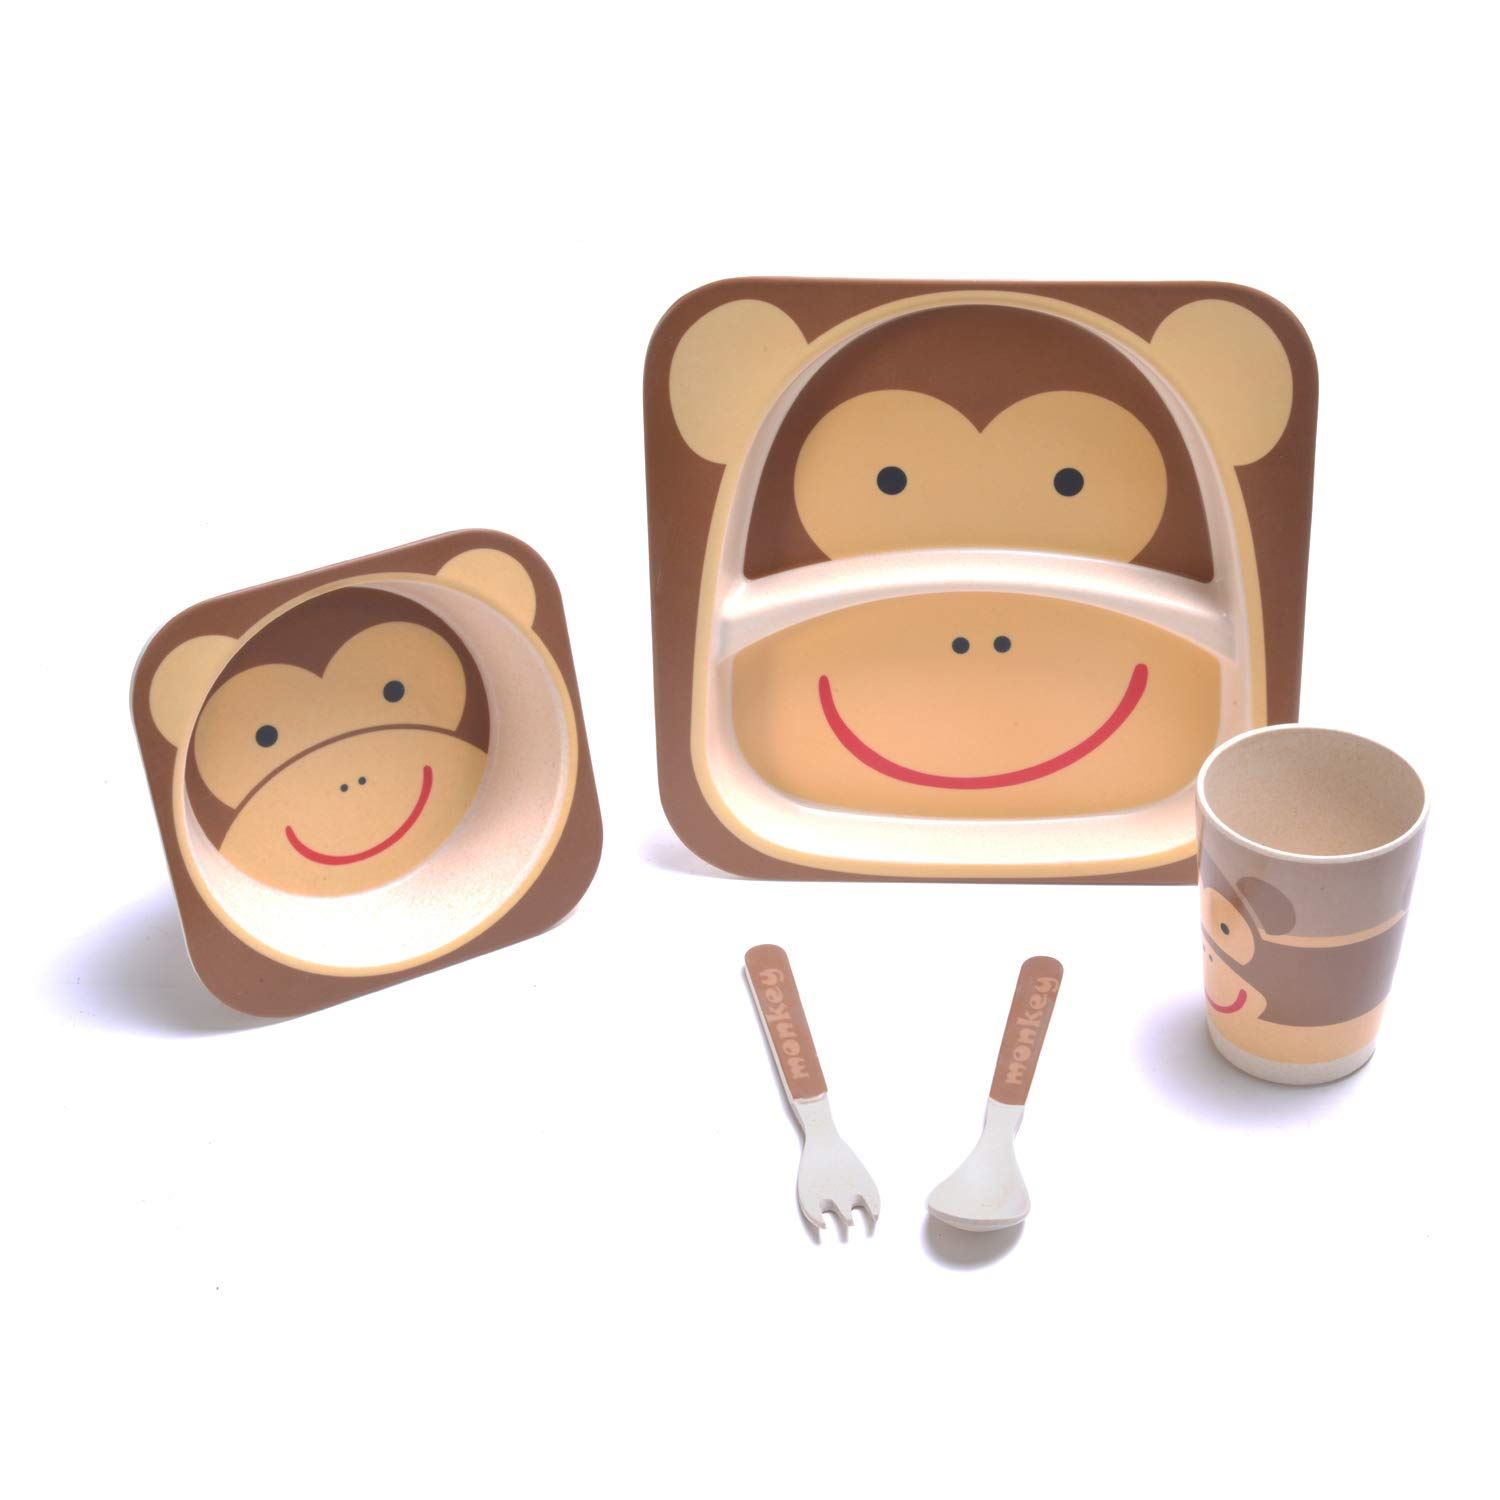 Bamboo-Kids-Meal-Set-Eco-Friendly-securite-alimentaire-alimentation-5pcs-Cuillere-Plate-Set-Toddler miniature 15